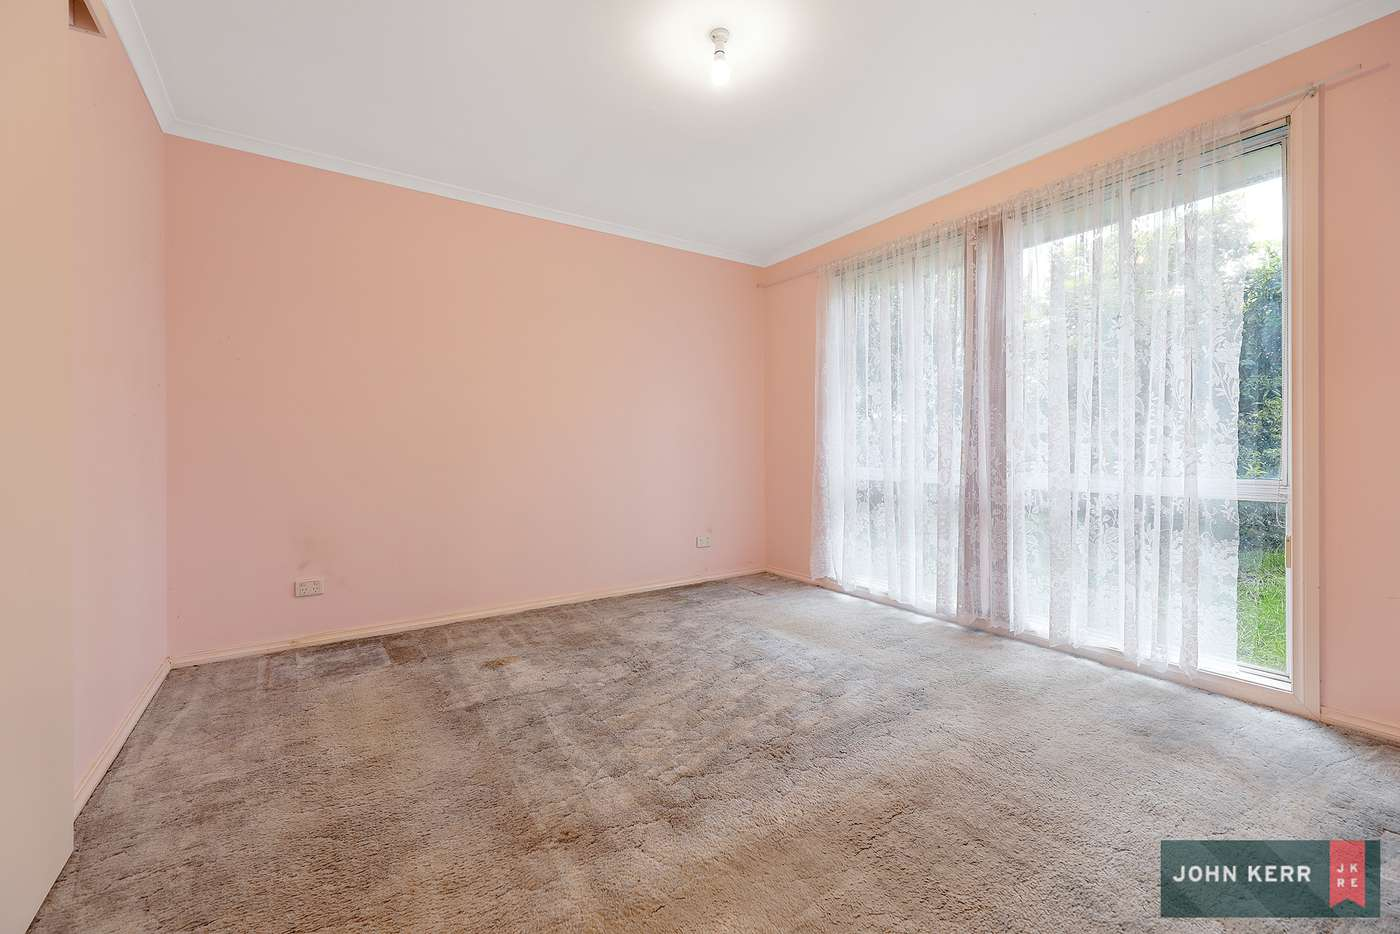 Sixth view of Homely house listing, 24 Jeeralang Avenue, Newborough VIC 3825